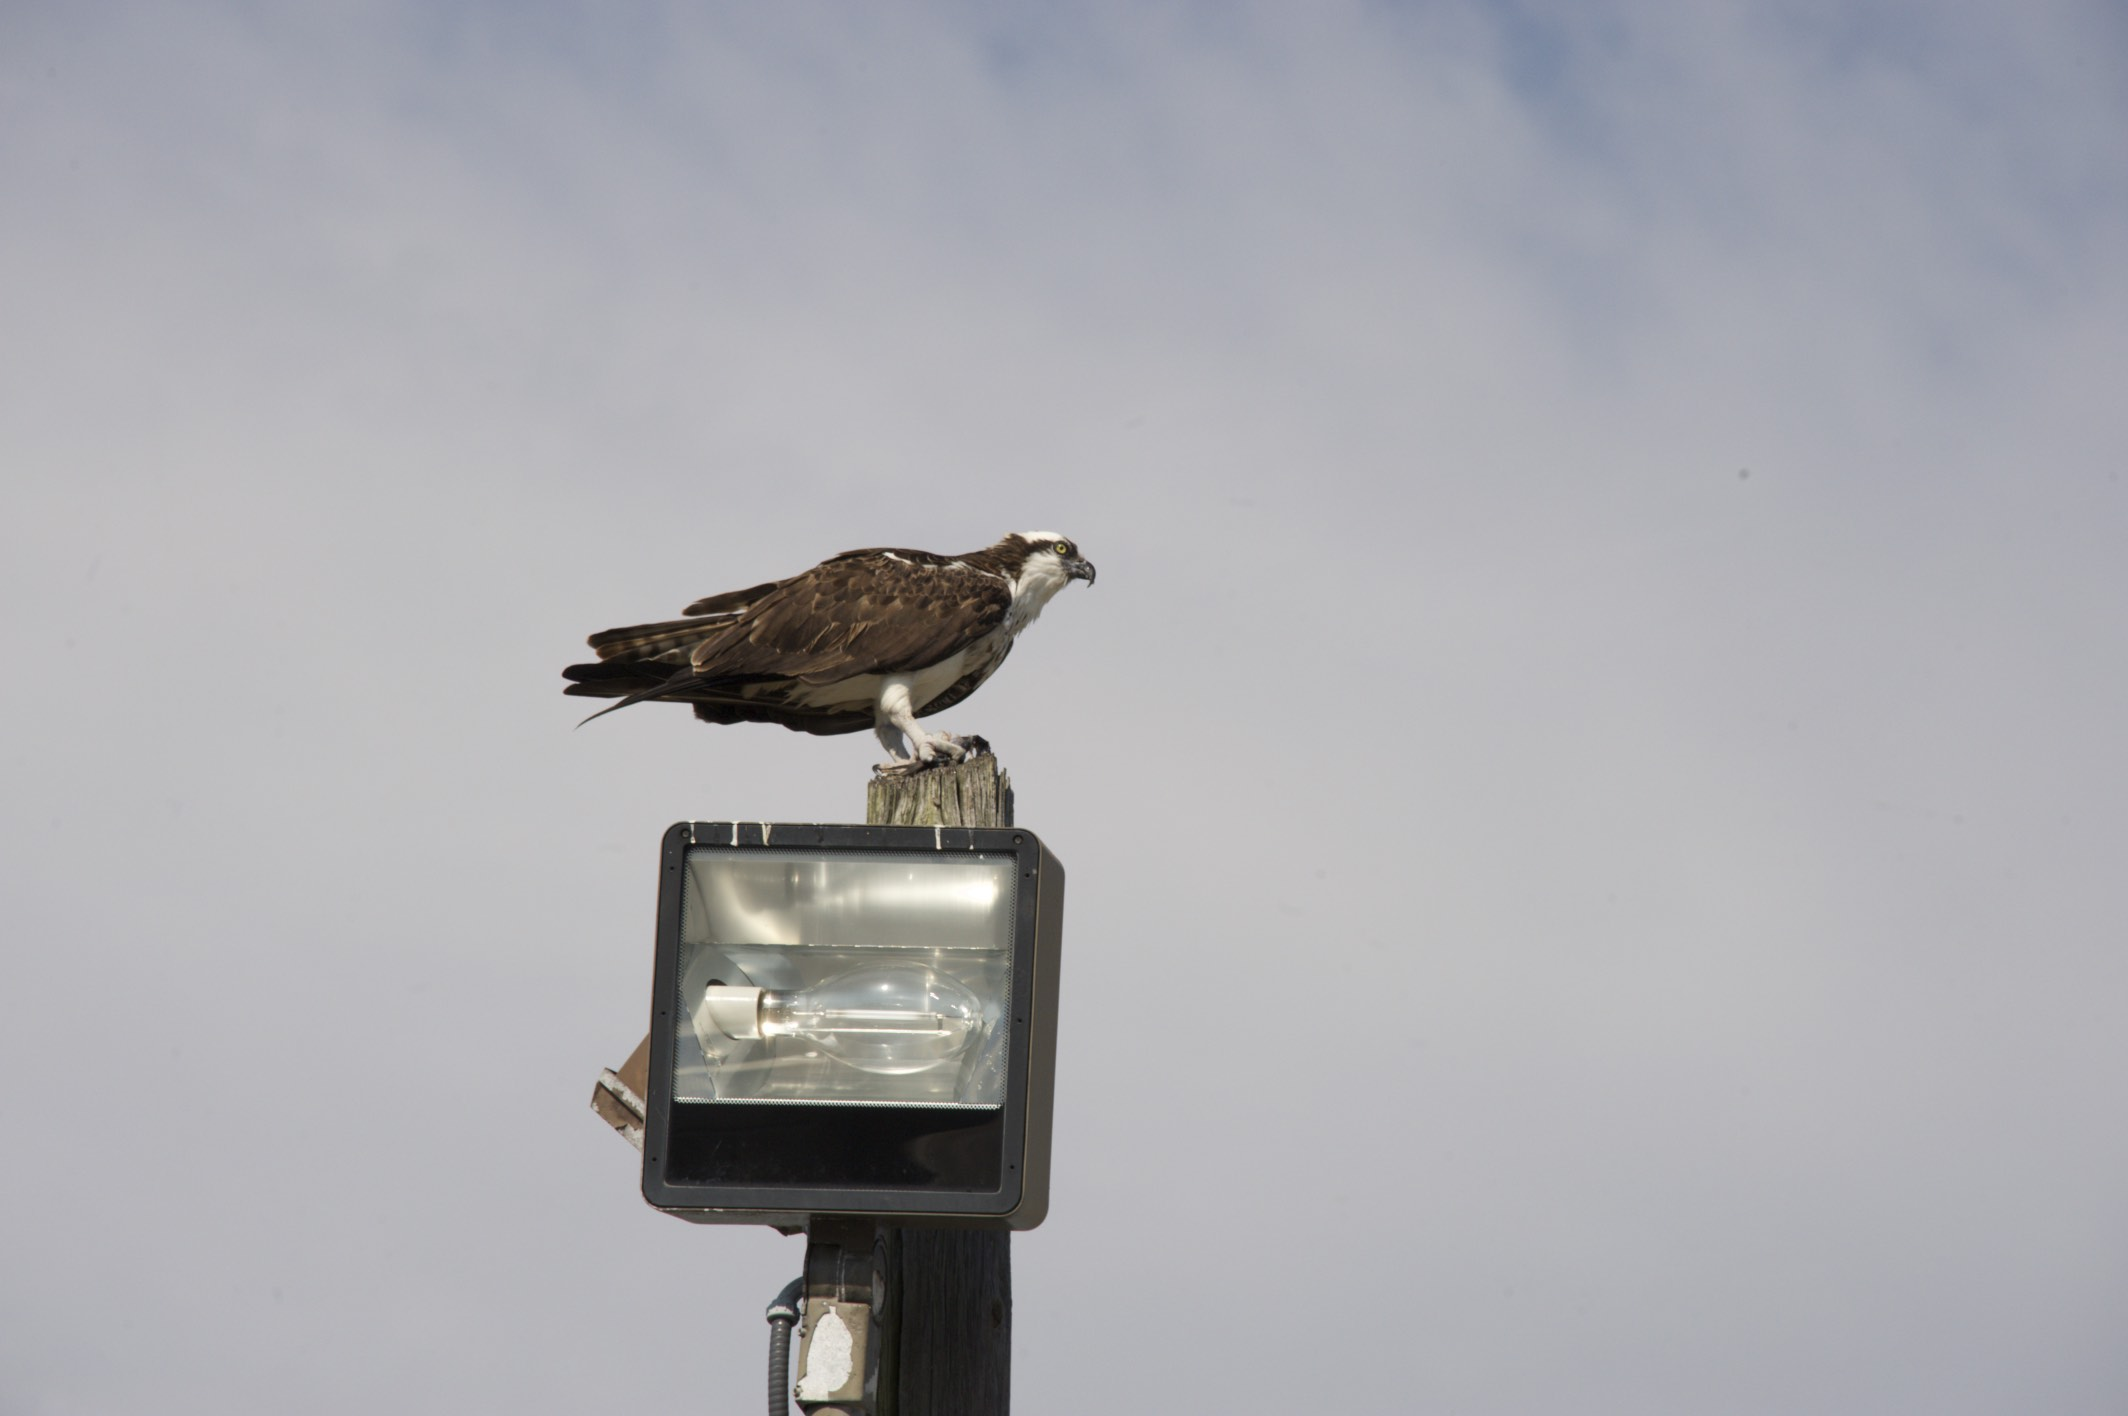 Here is an Osprey by the waterside.